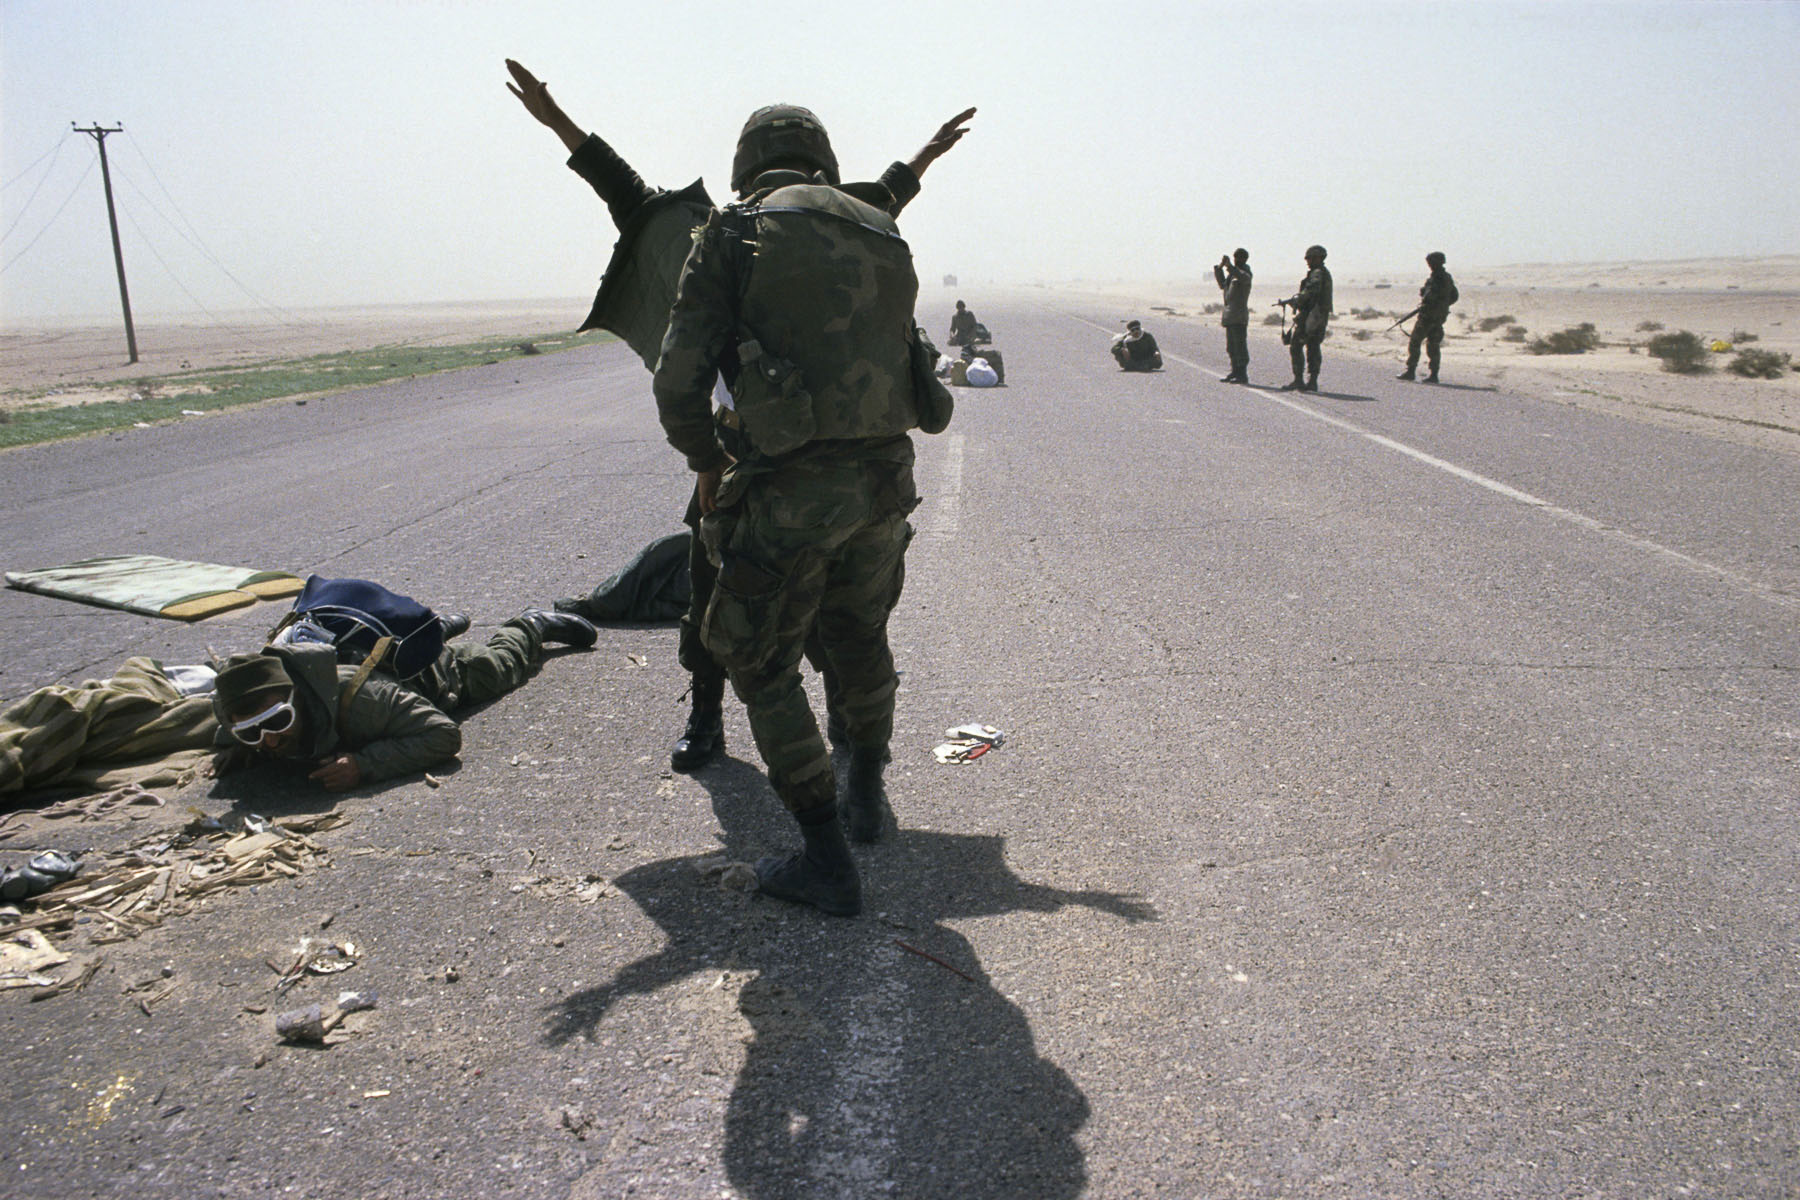 U.S. soldiers arrest Iraqi soldiers on the road to Basra in February 1991